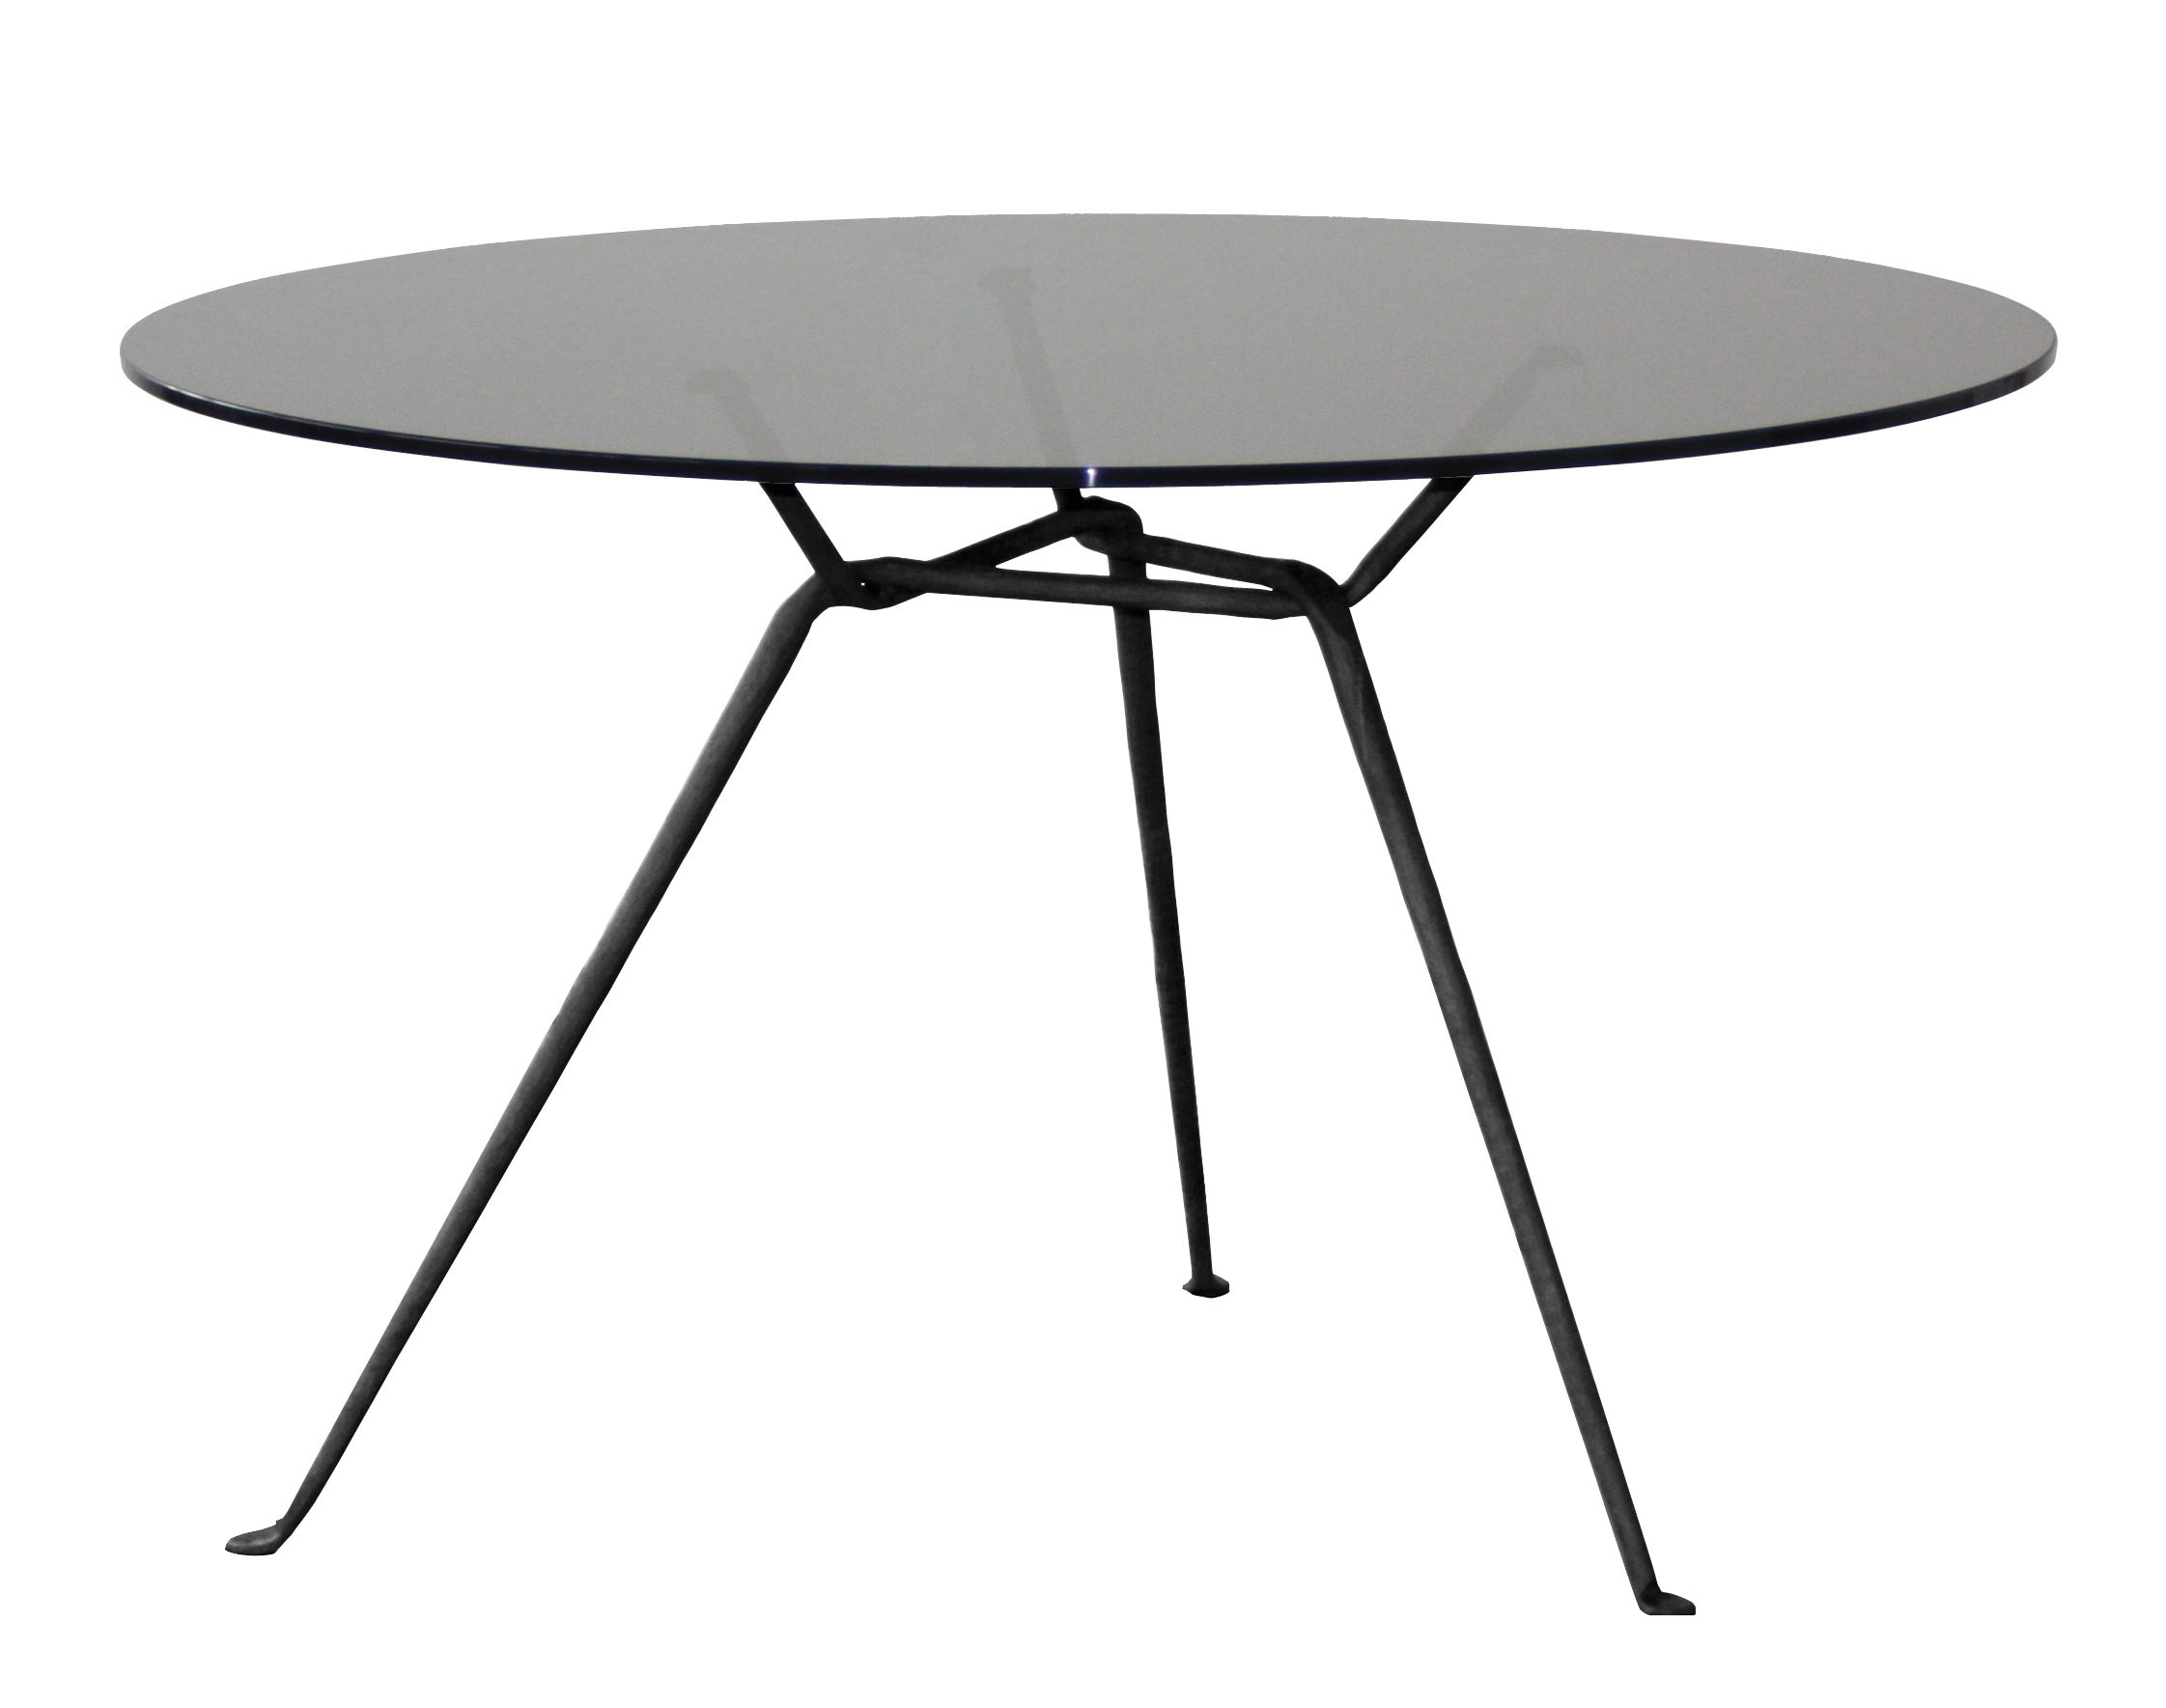 table officina 120 cm plateau verre verre gris fum pieds noirs magis. Black Bedroom Furniture Sets. Home Design Ideas